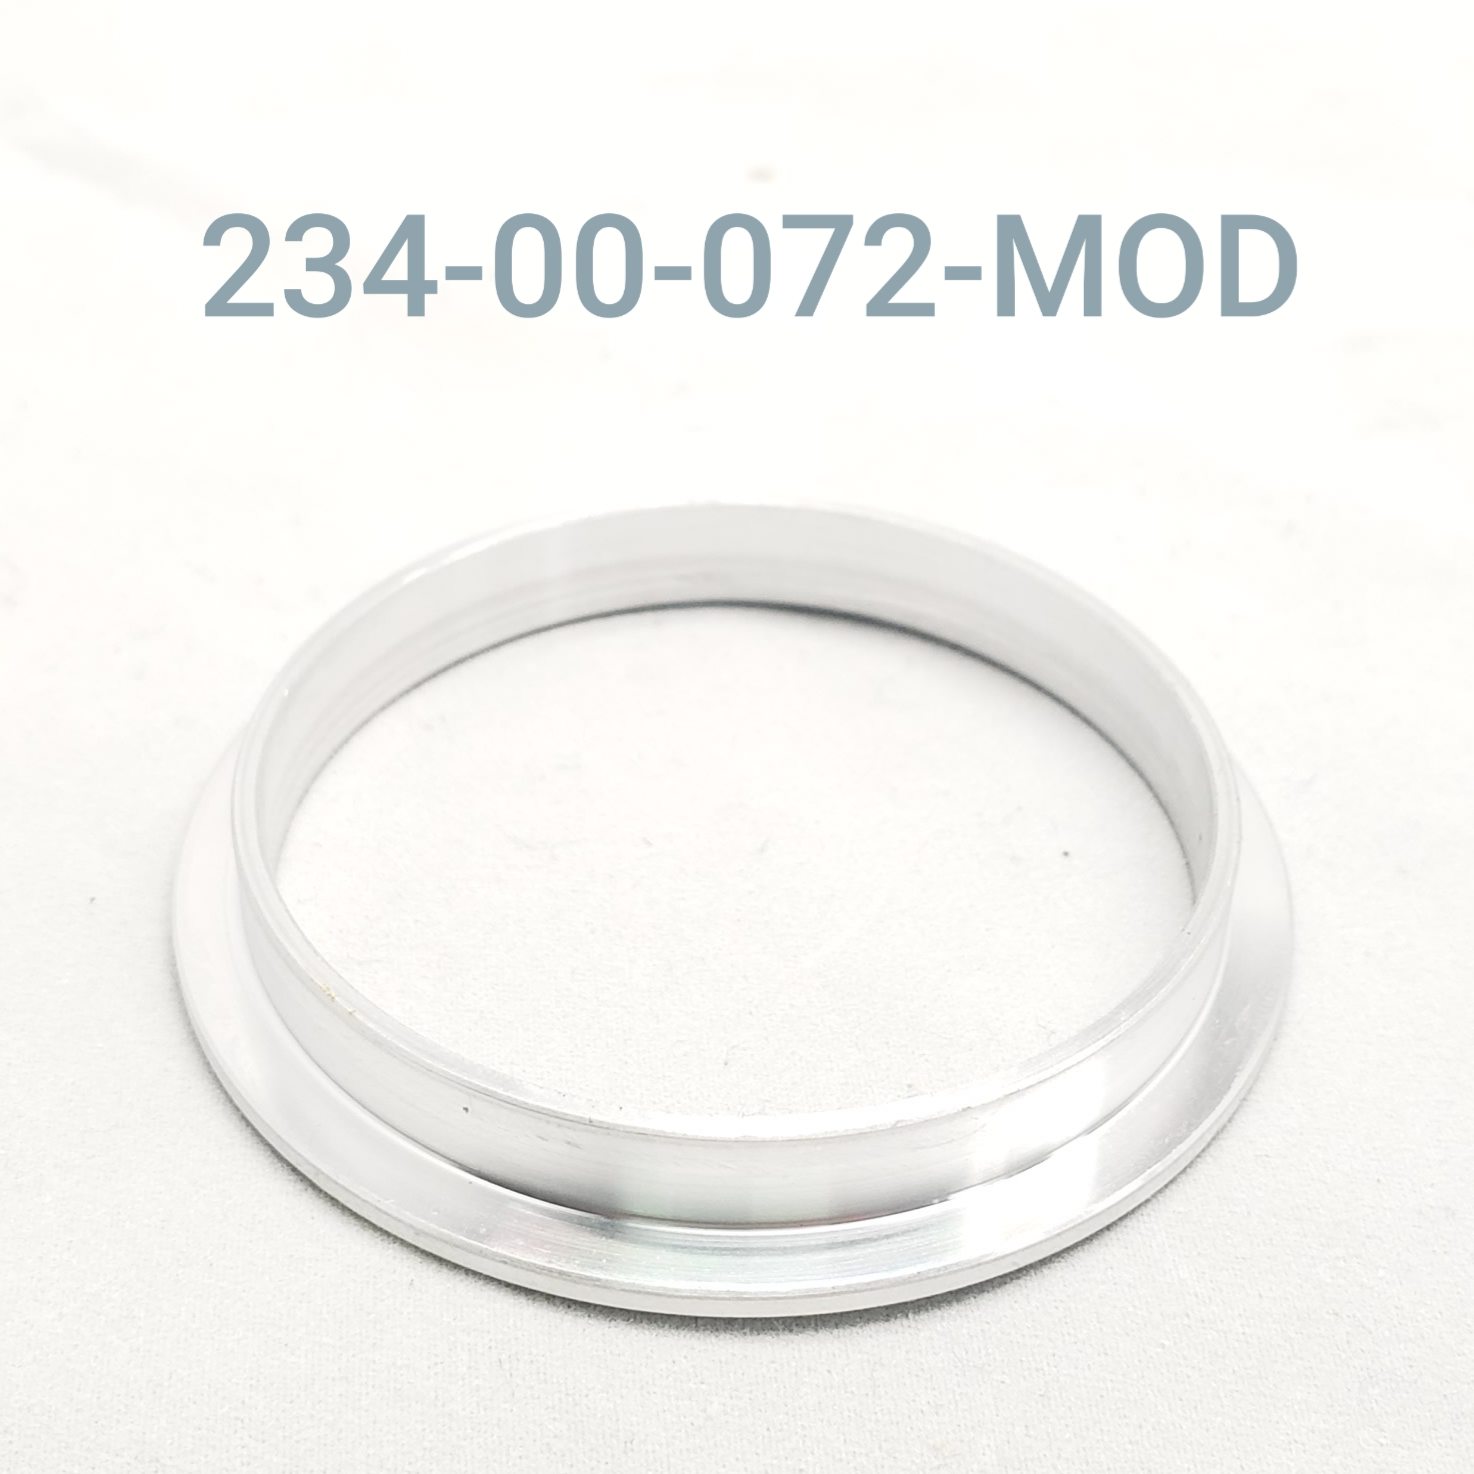 SPRING ADAPTOR, FOX ZERO PRO PRELOAD NUT TO METRIC SPRING (2.23 OD X 1.85 ID)